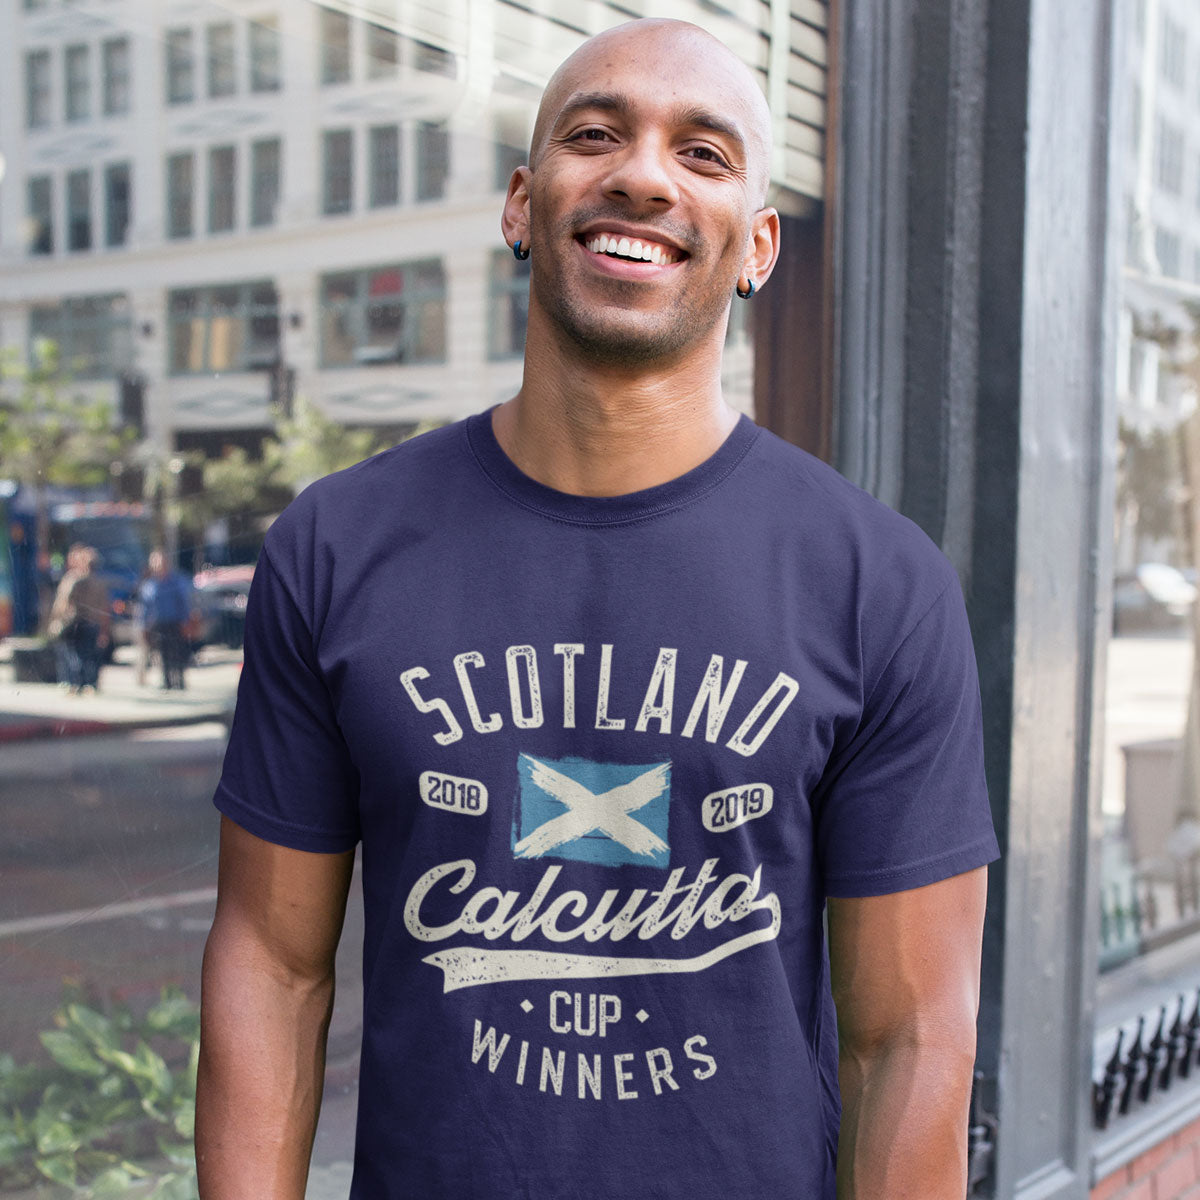 Men's Scotland 2018 & 2019 Calcutta Cup Winners Tee